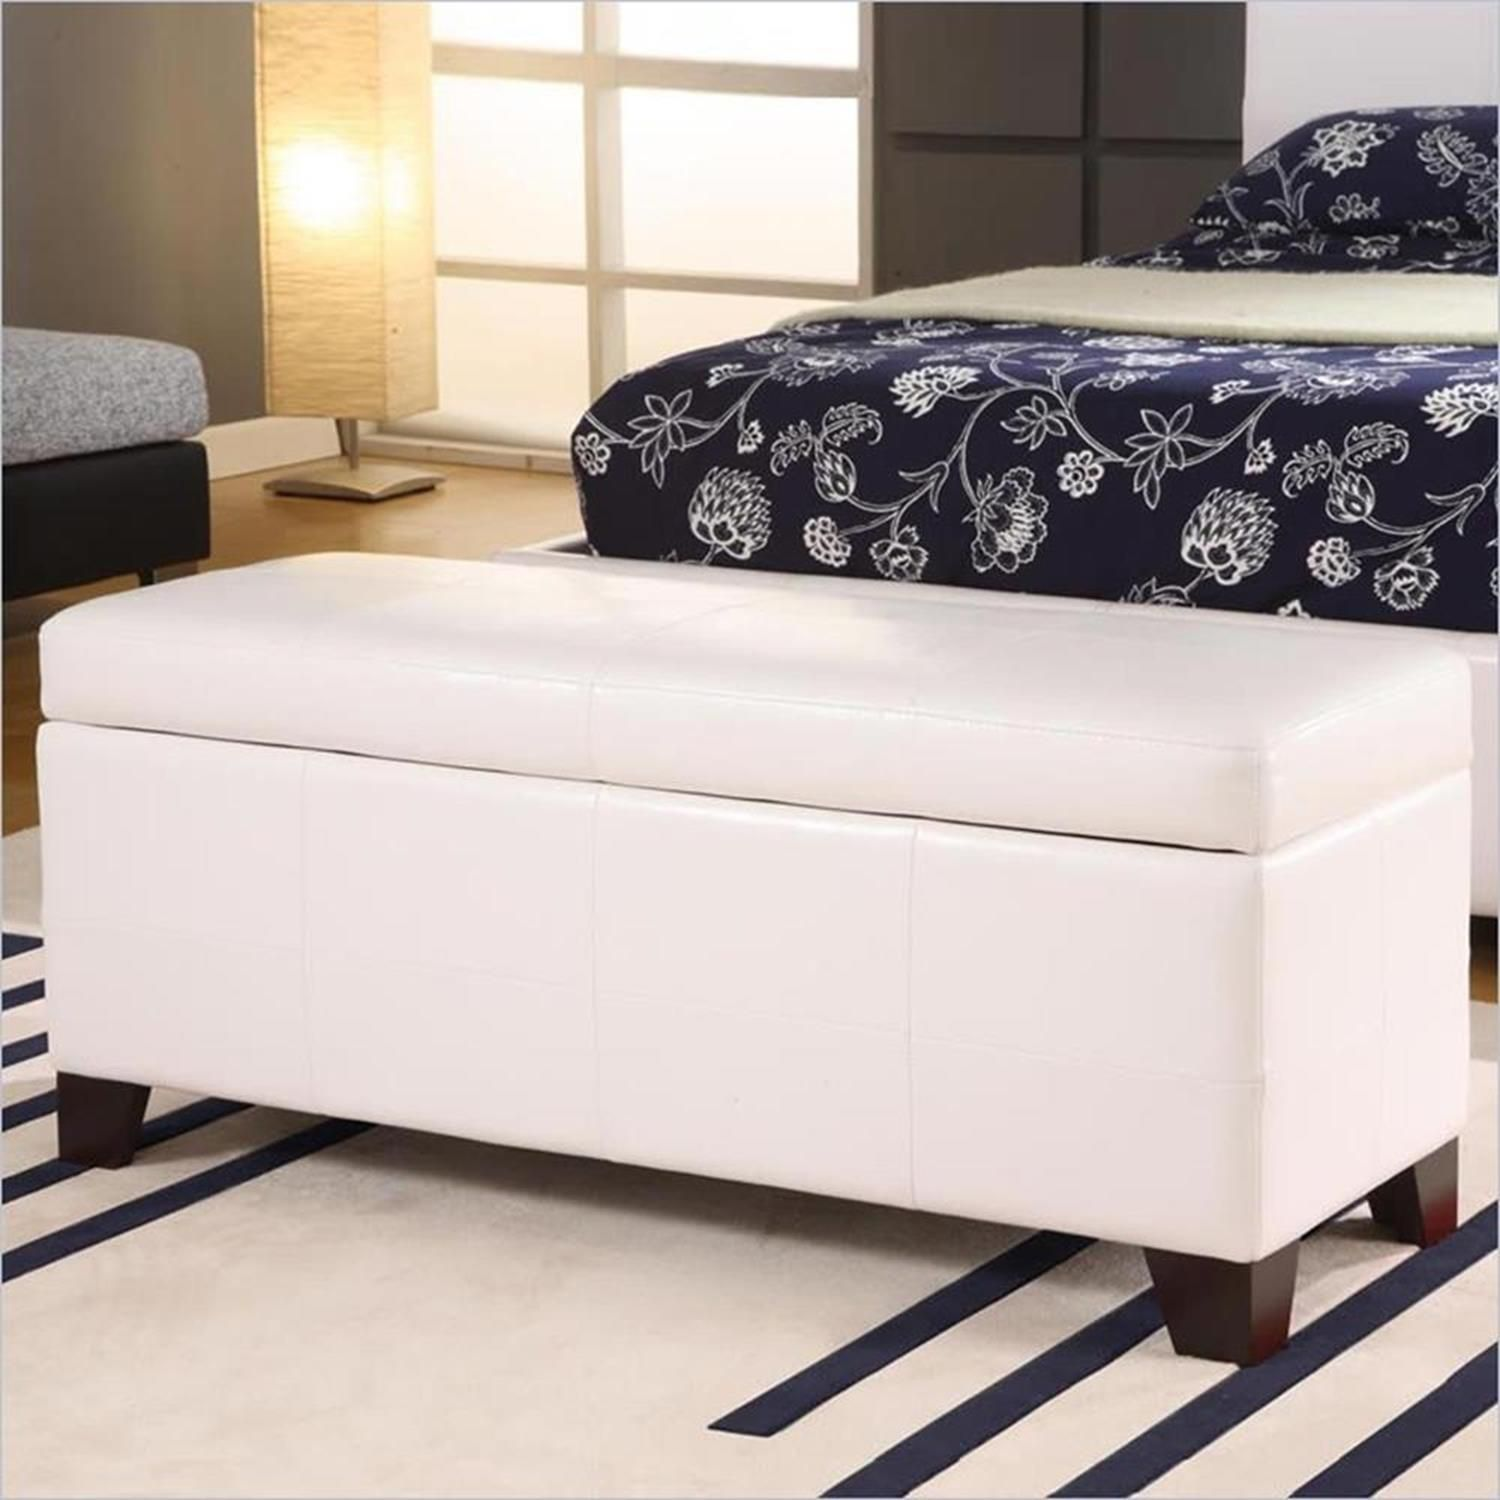 15 Inexpensive Bedroom Storage Bench Seat Ideas Storage Bench Bedroom White Storage Bench Storage Bench Seating